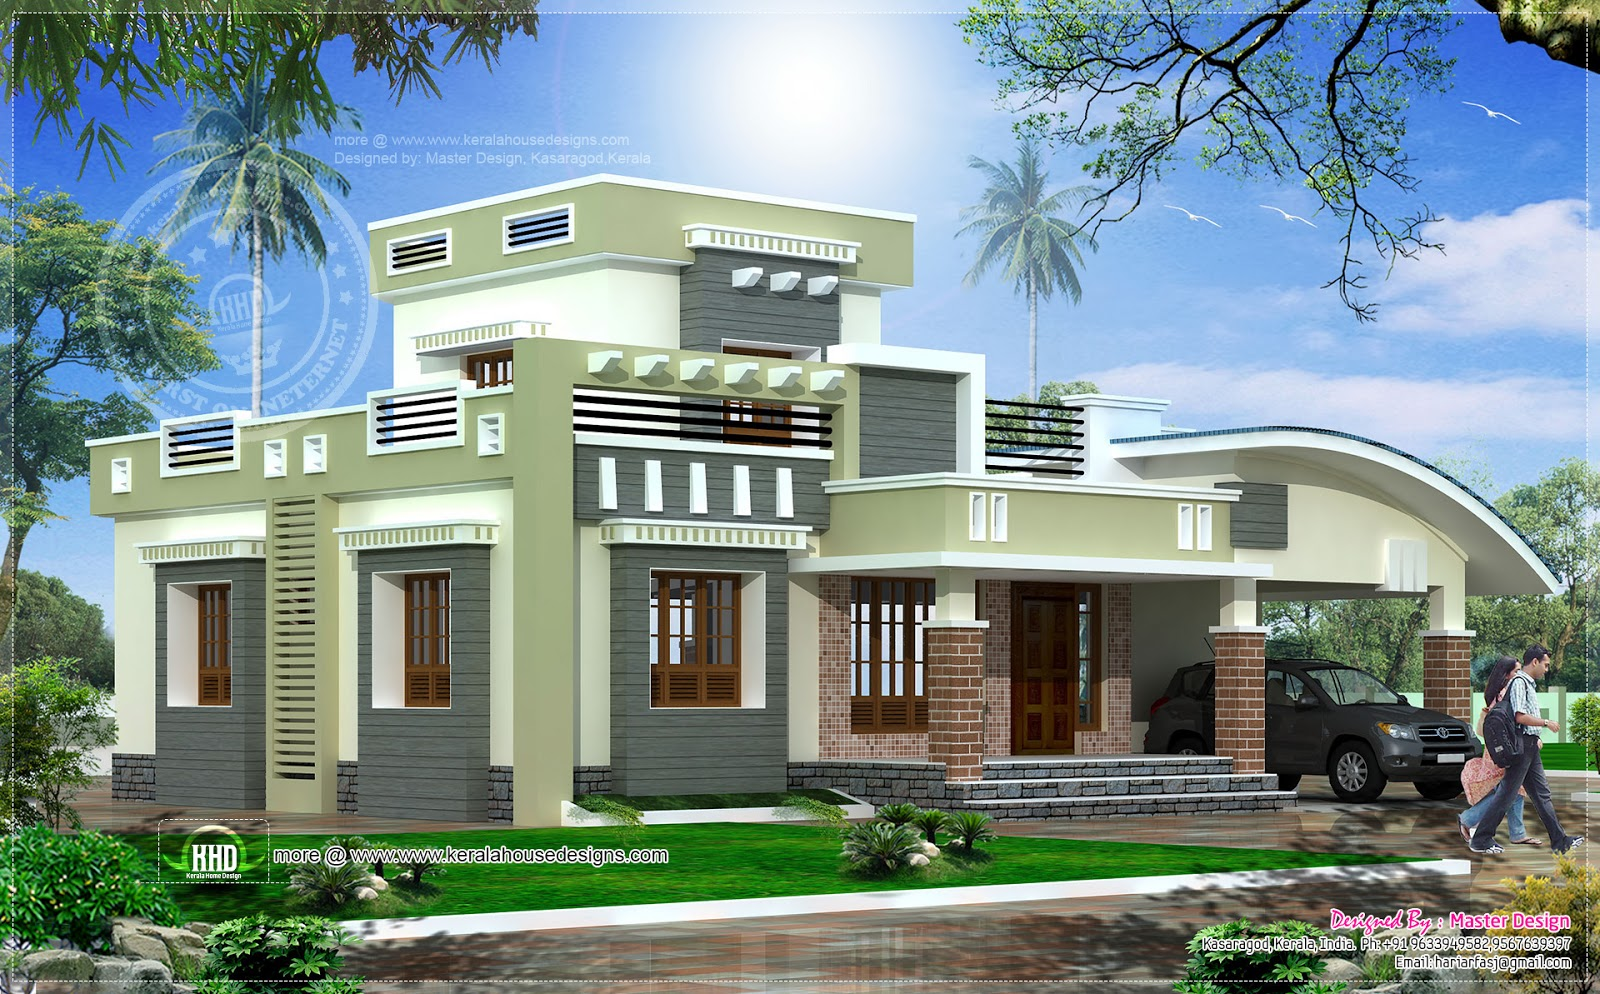 Indian House Front Side Design With Design Of Houses Front Side.